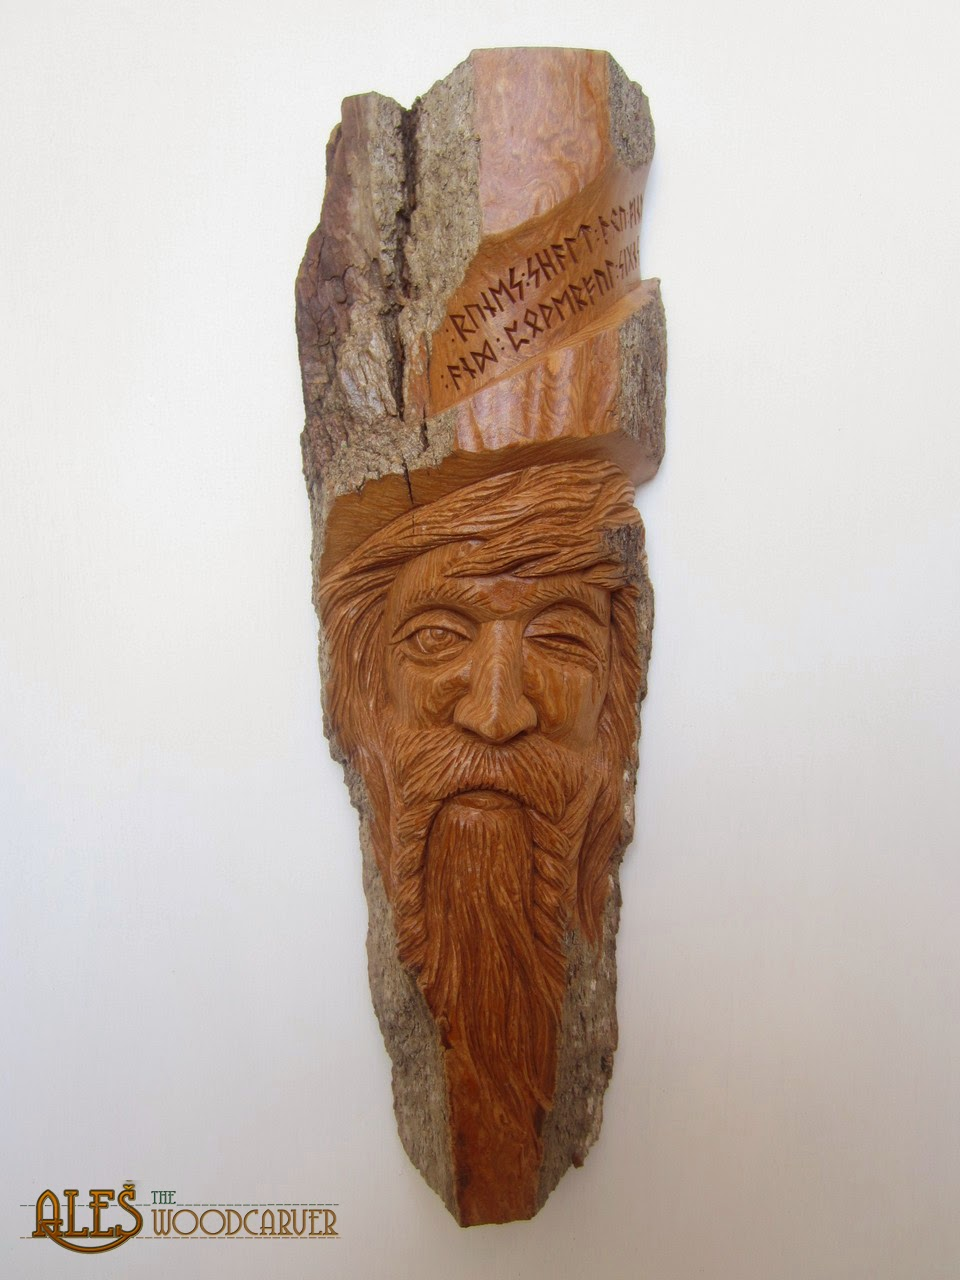 Ales the woodcarver odin one eyed